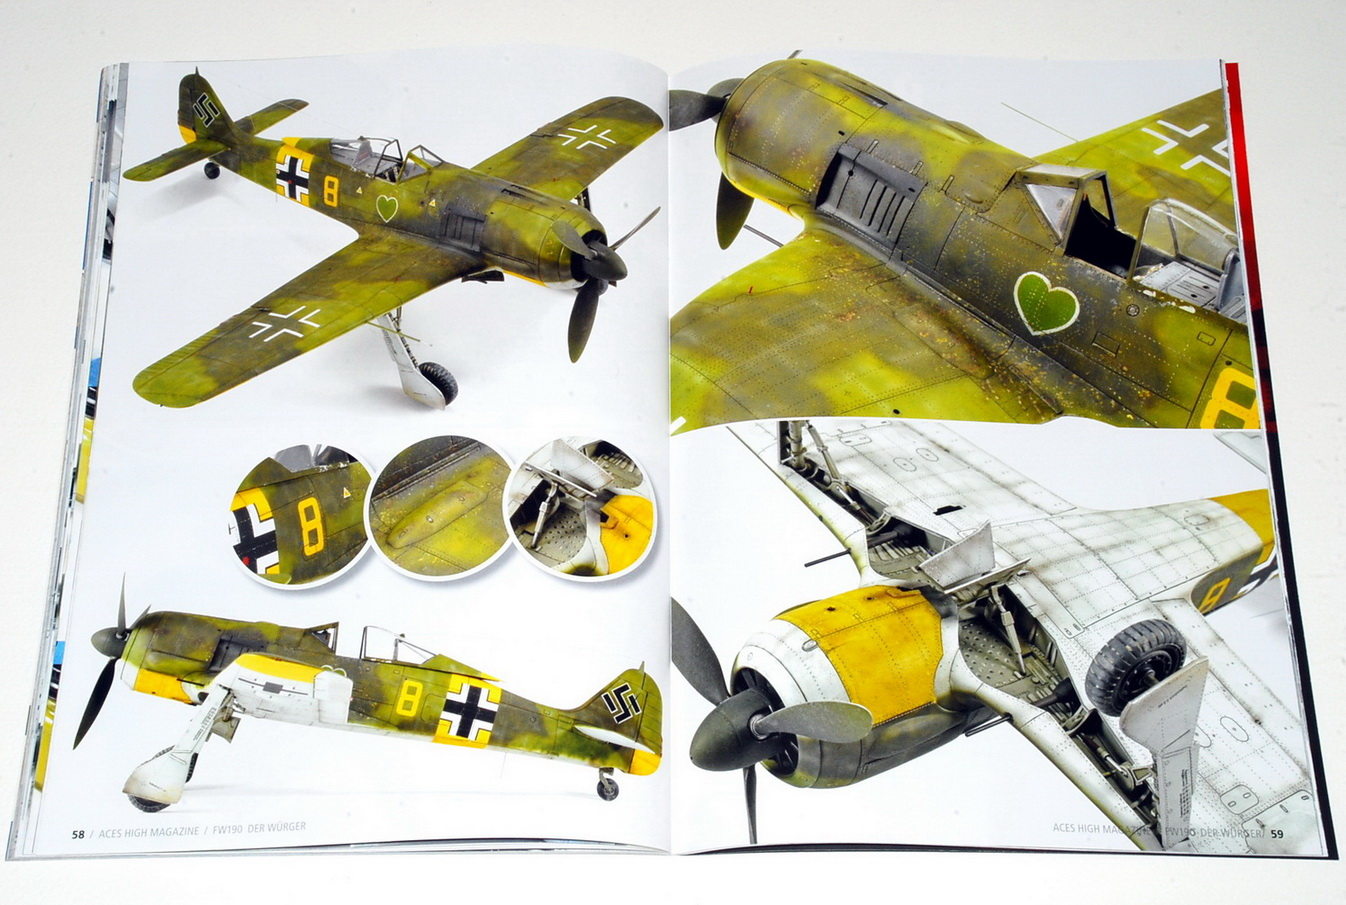 Fw190 Der Würger, Aces High Magazine issue 11 (AK 2921), AK Interactive